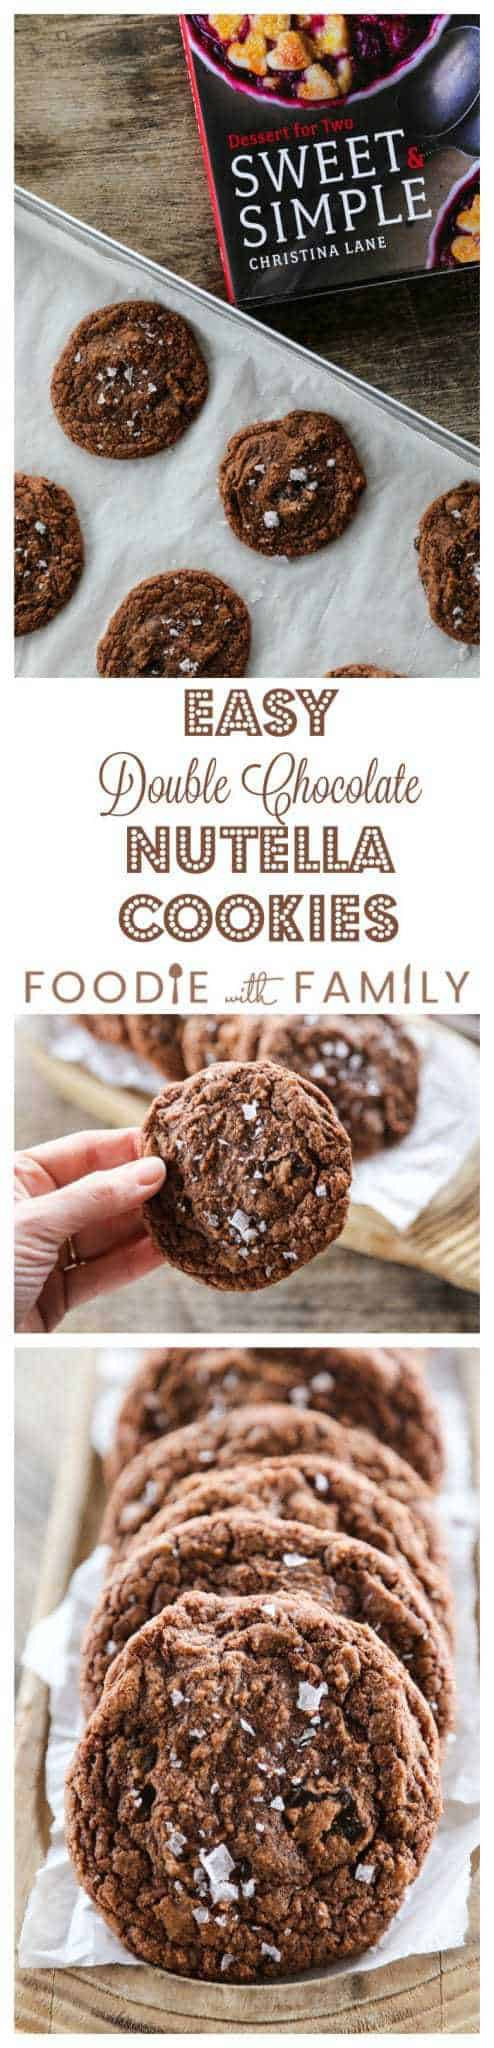 Way too easy to taste this good, Easy Double Chocolate Nutella Cookies with a dusting of sea salt from and a review of Sweet & Simple by Christina Lane.